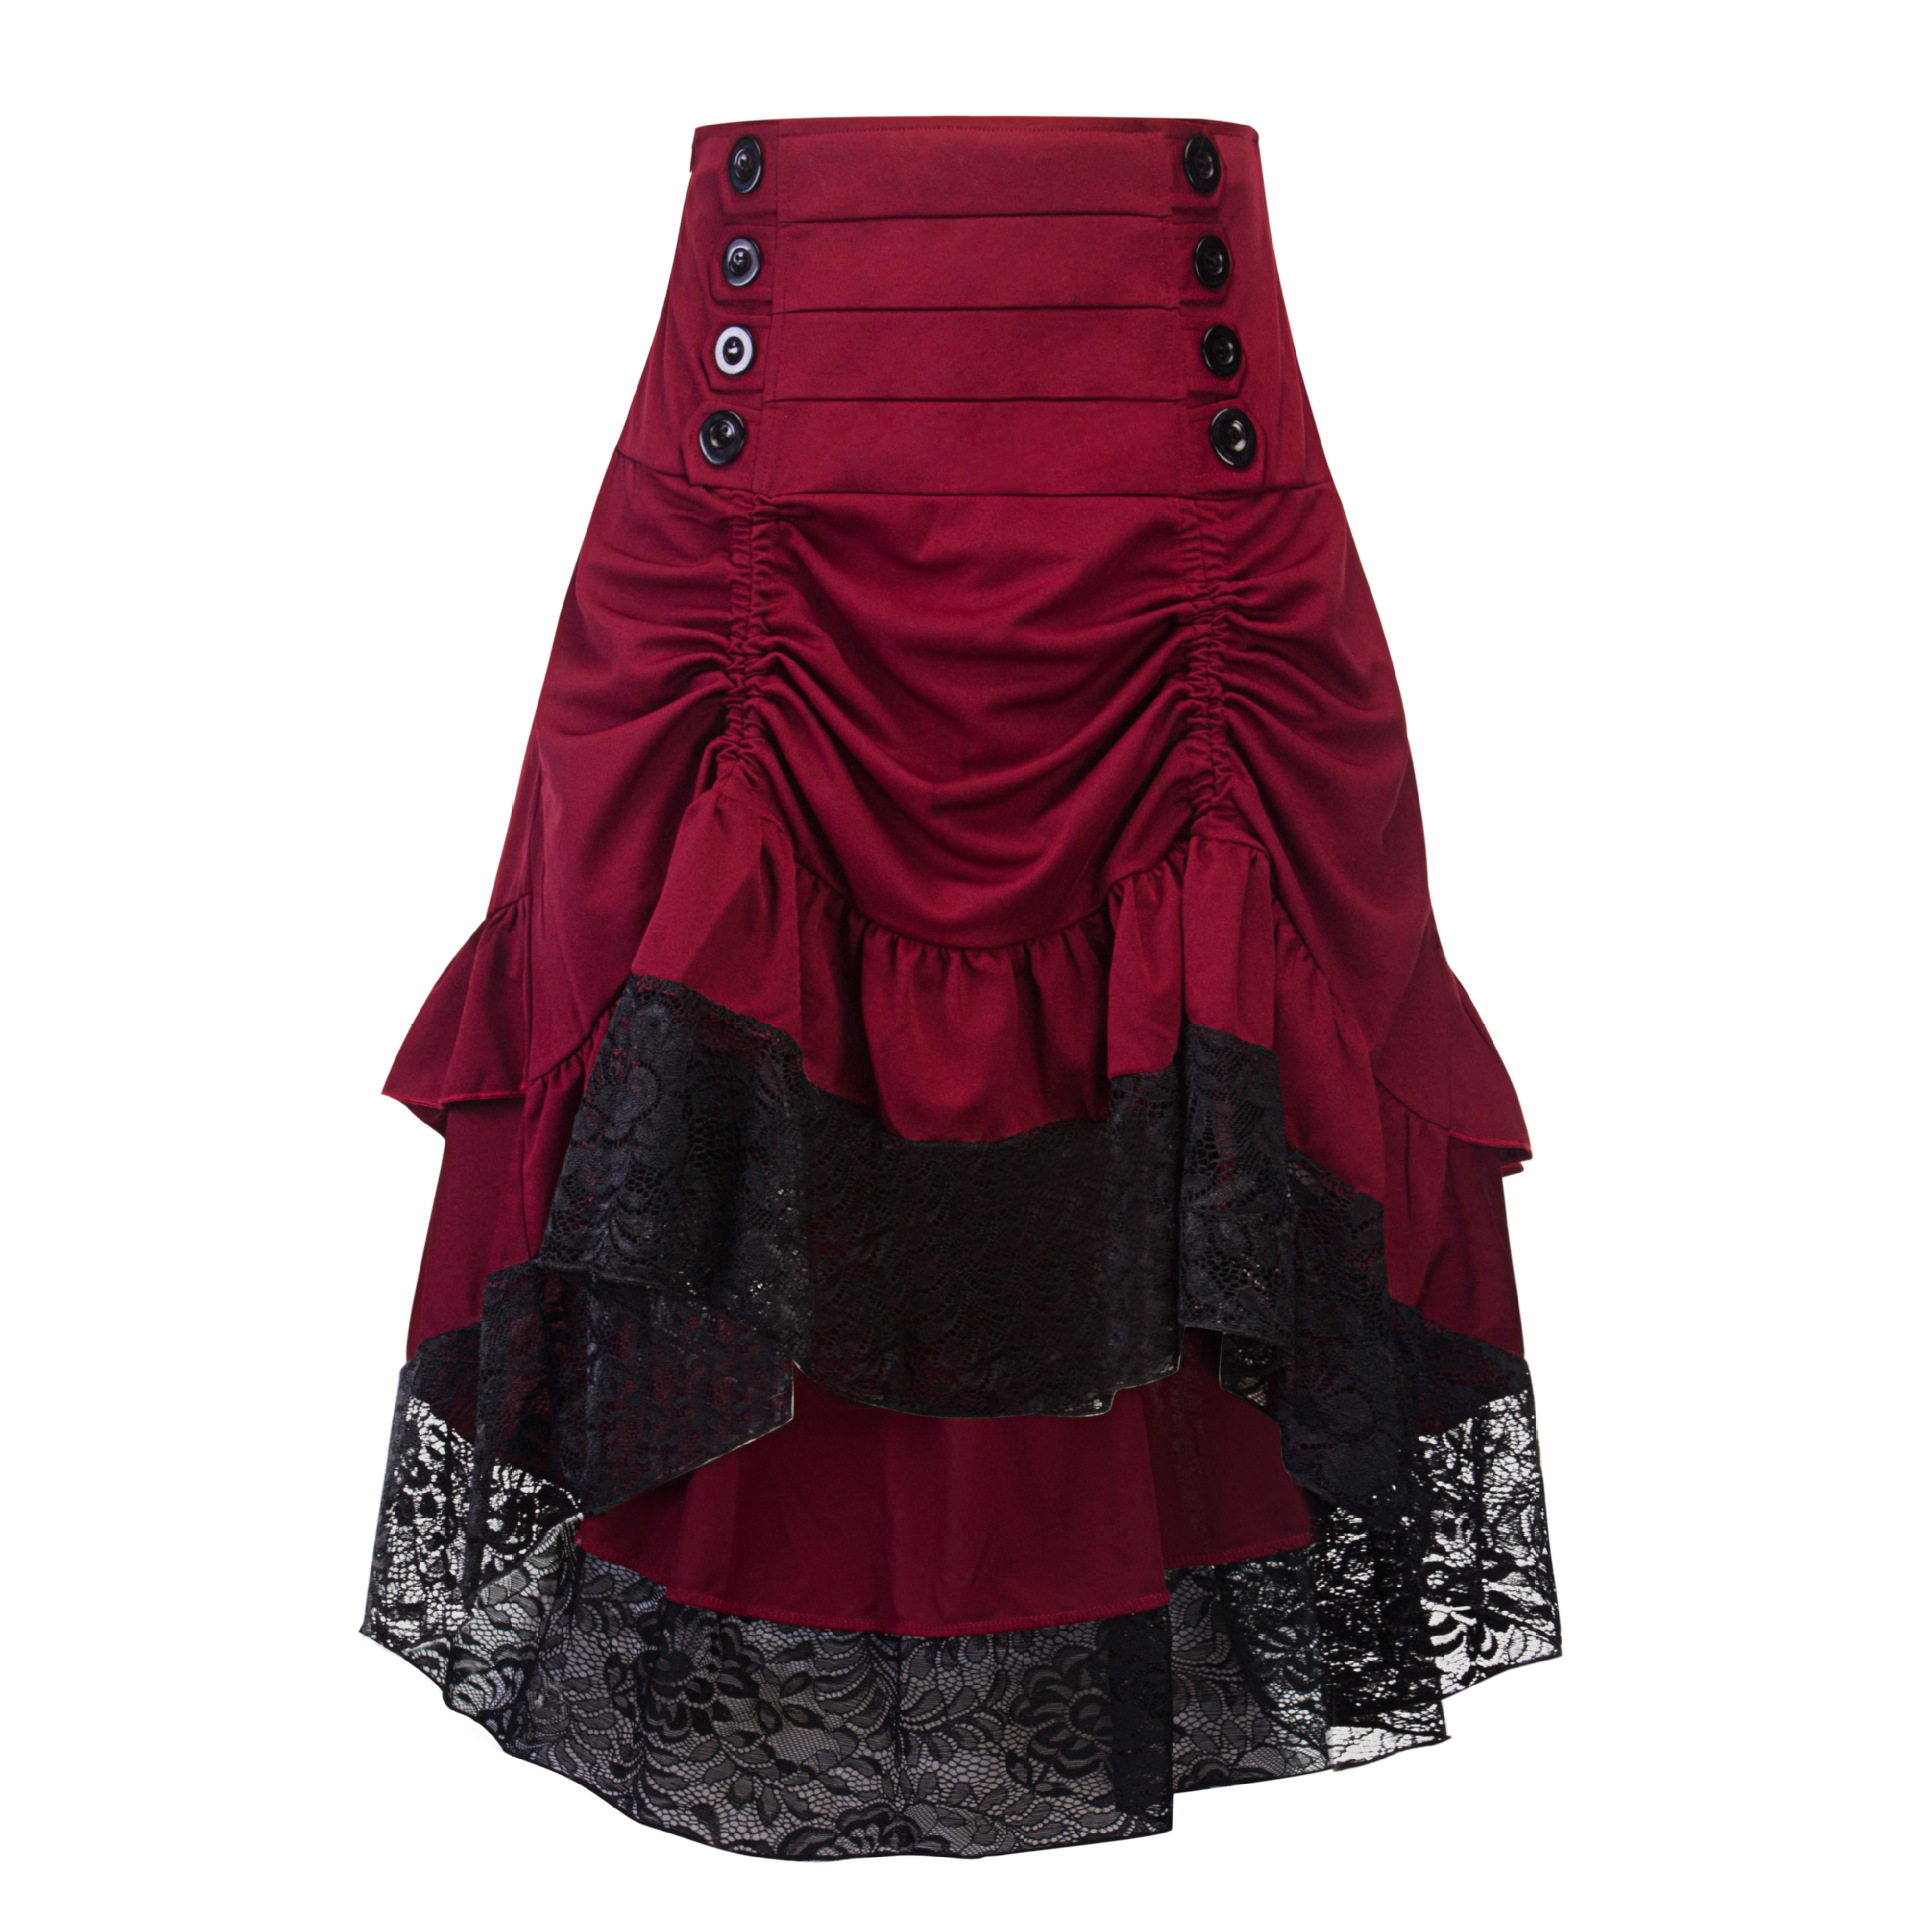 2018 S-2XL  Autumn And Winter New Style Women's Steampunk Clothing Party Club Wear Black Lace Hip Skirt